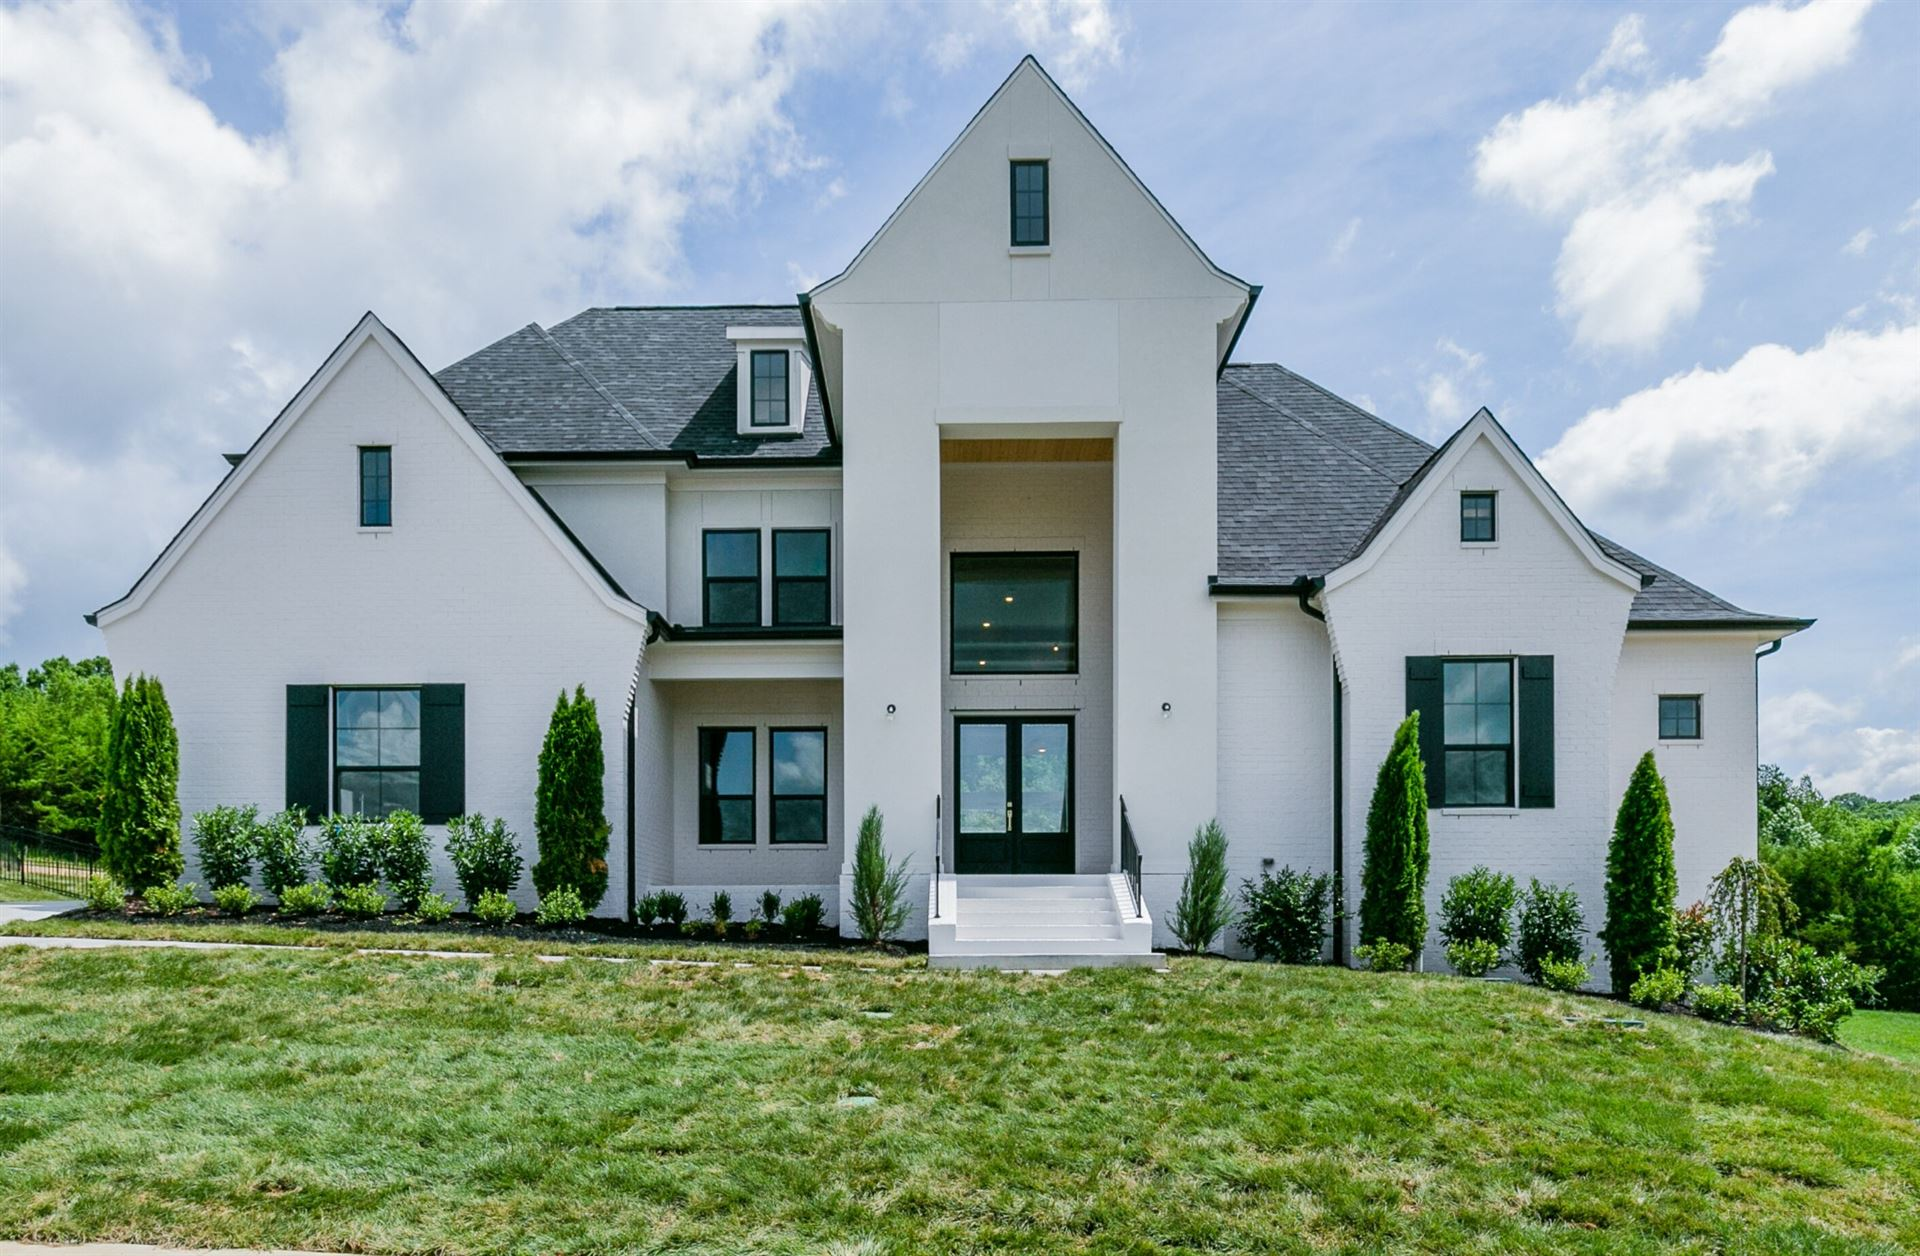 1004 Heights Blvd, Brentwood, TN 37027 - MLS#: 2236130